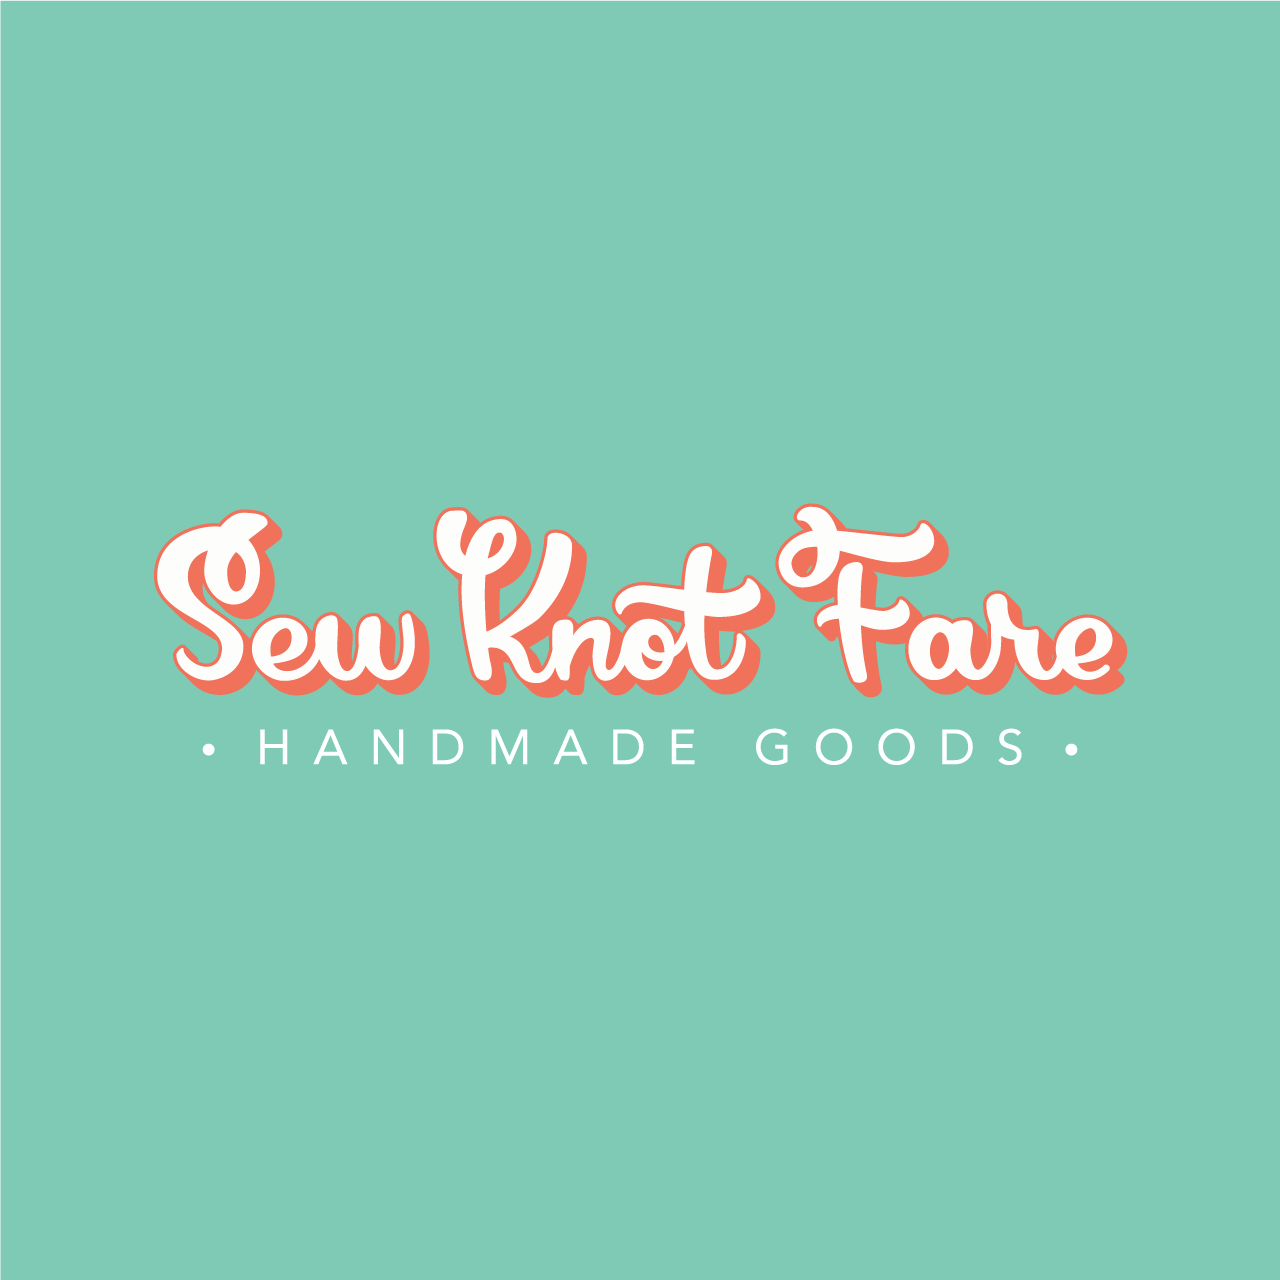 Sew Knot Fare Logo:Click to see full case study.